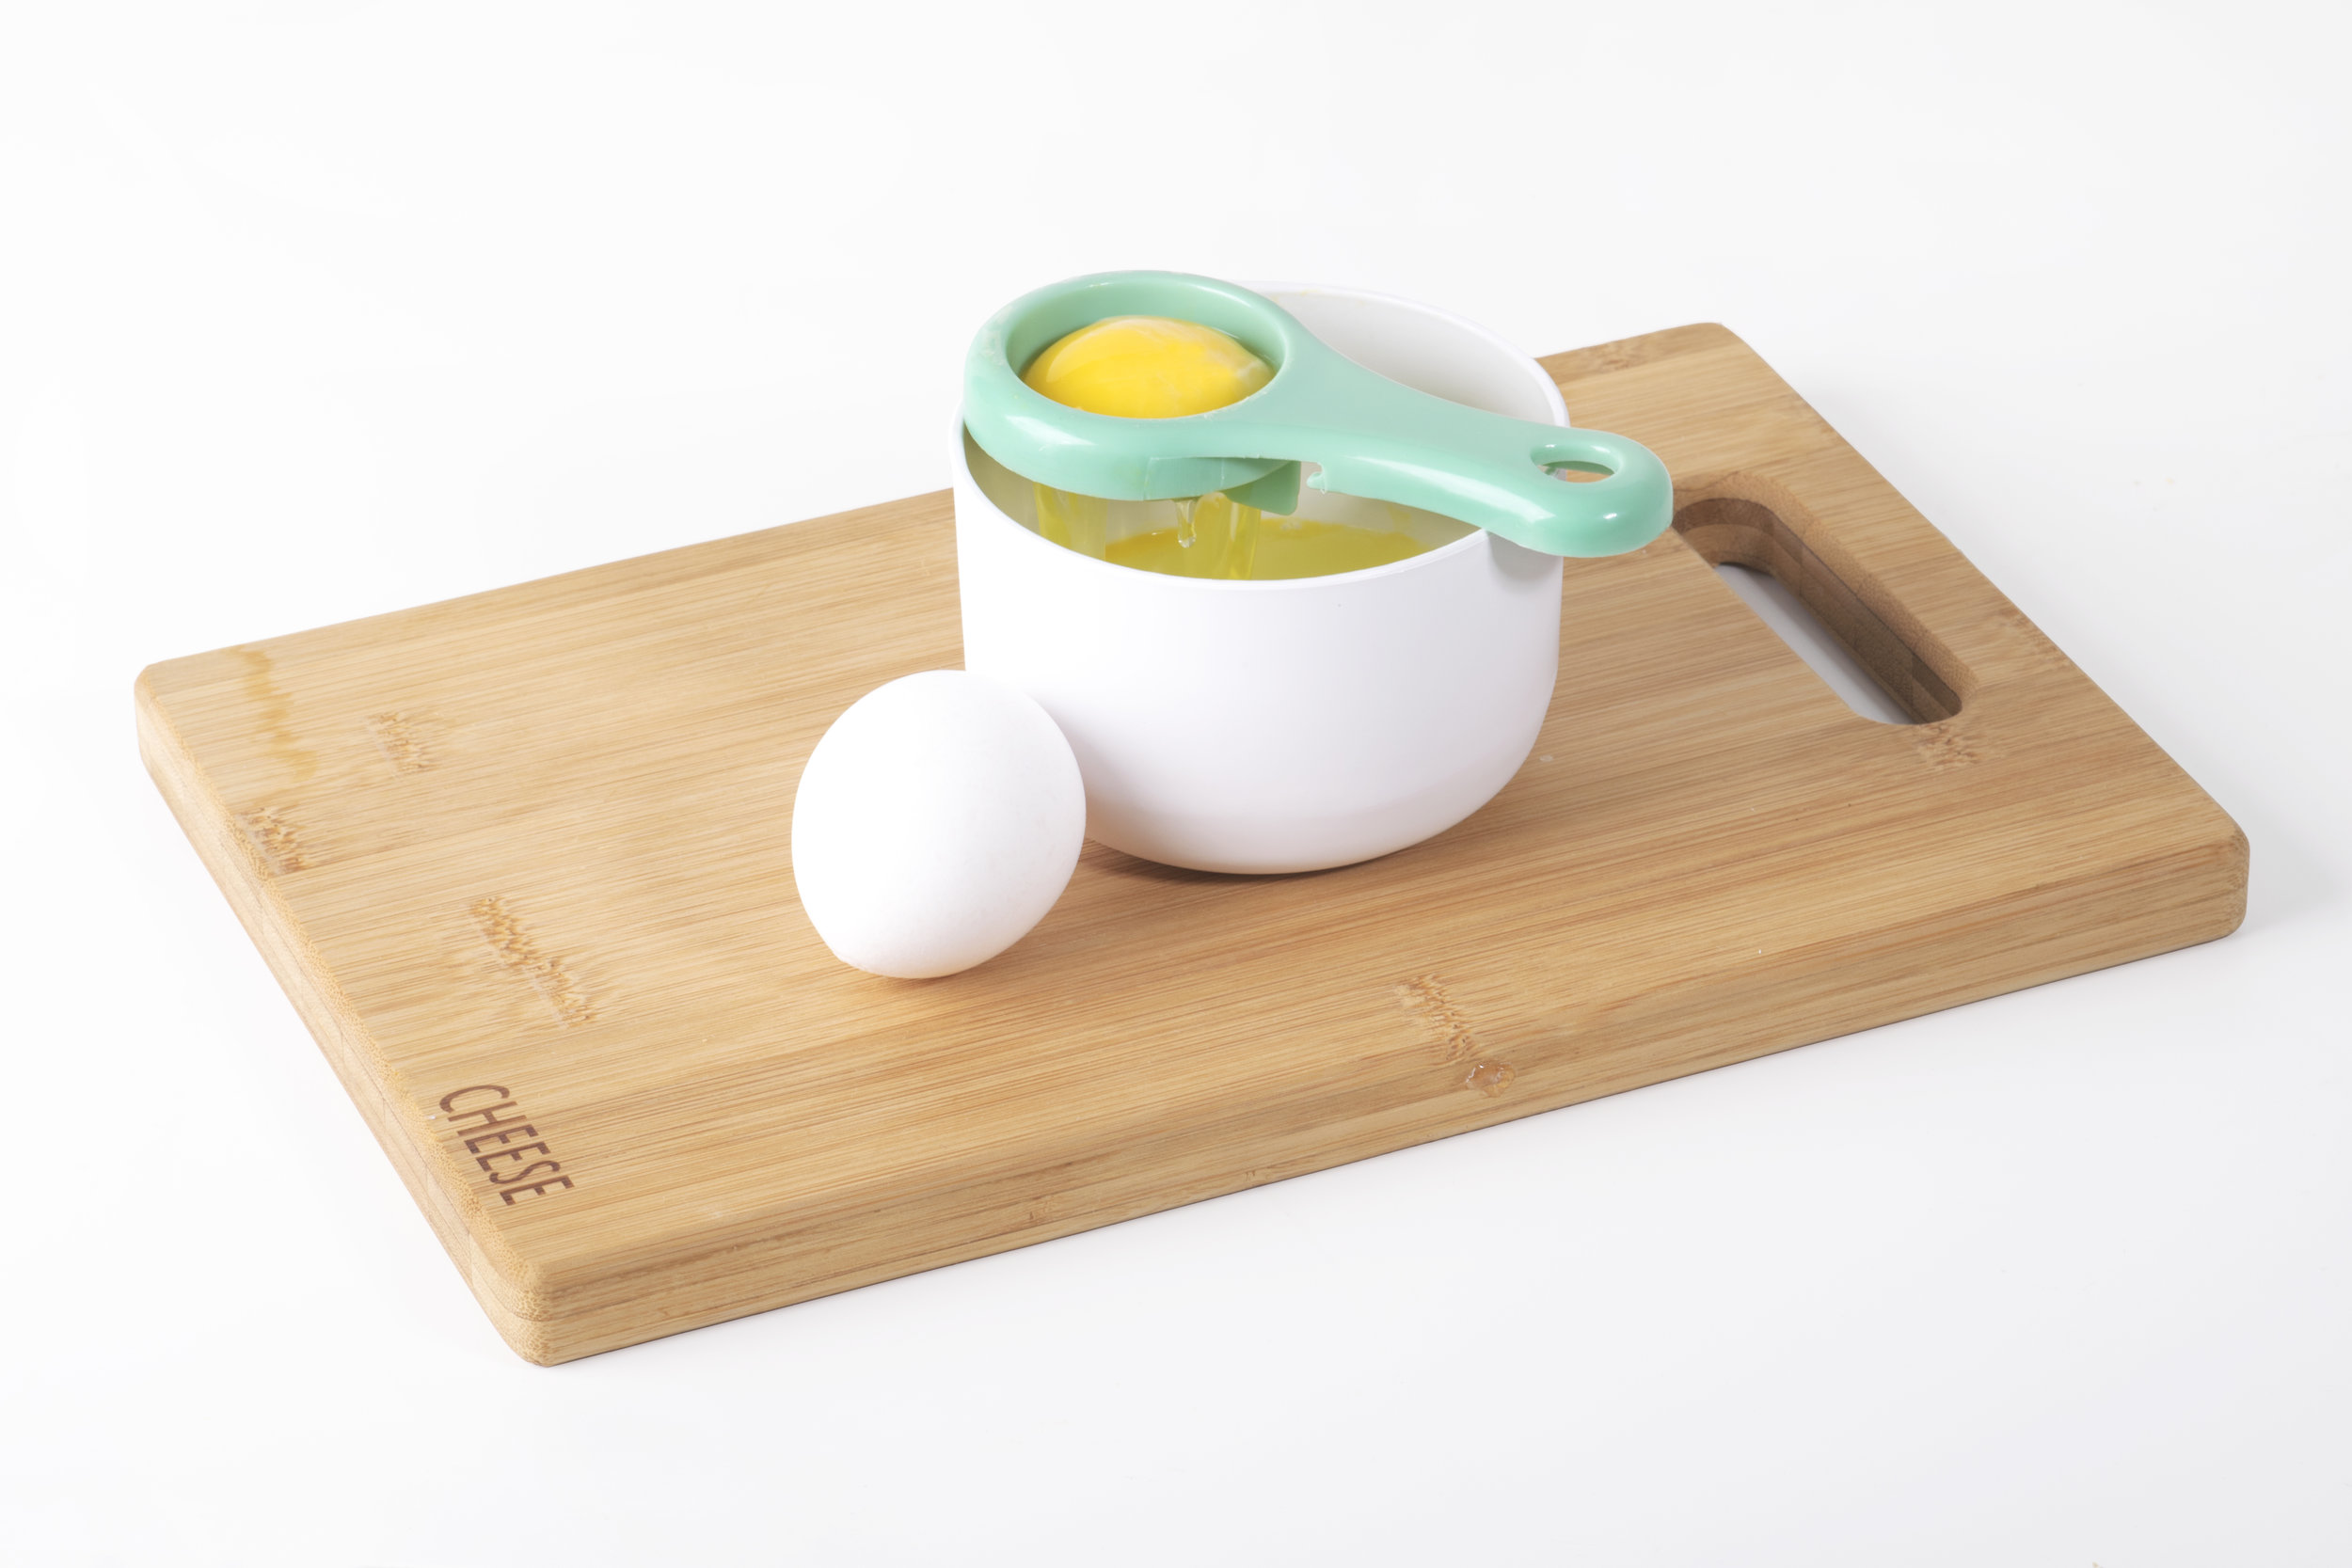 2018_SpringSummer_18686-BEAUTY_Egg strainer2.jpg